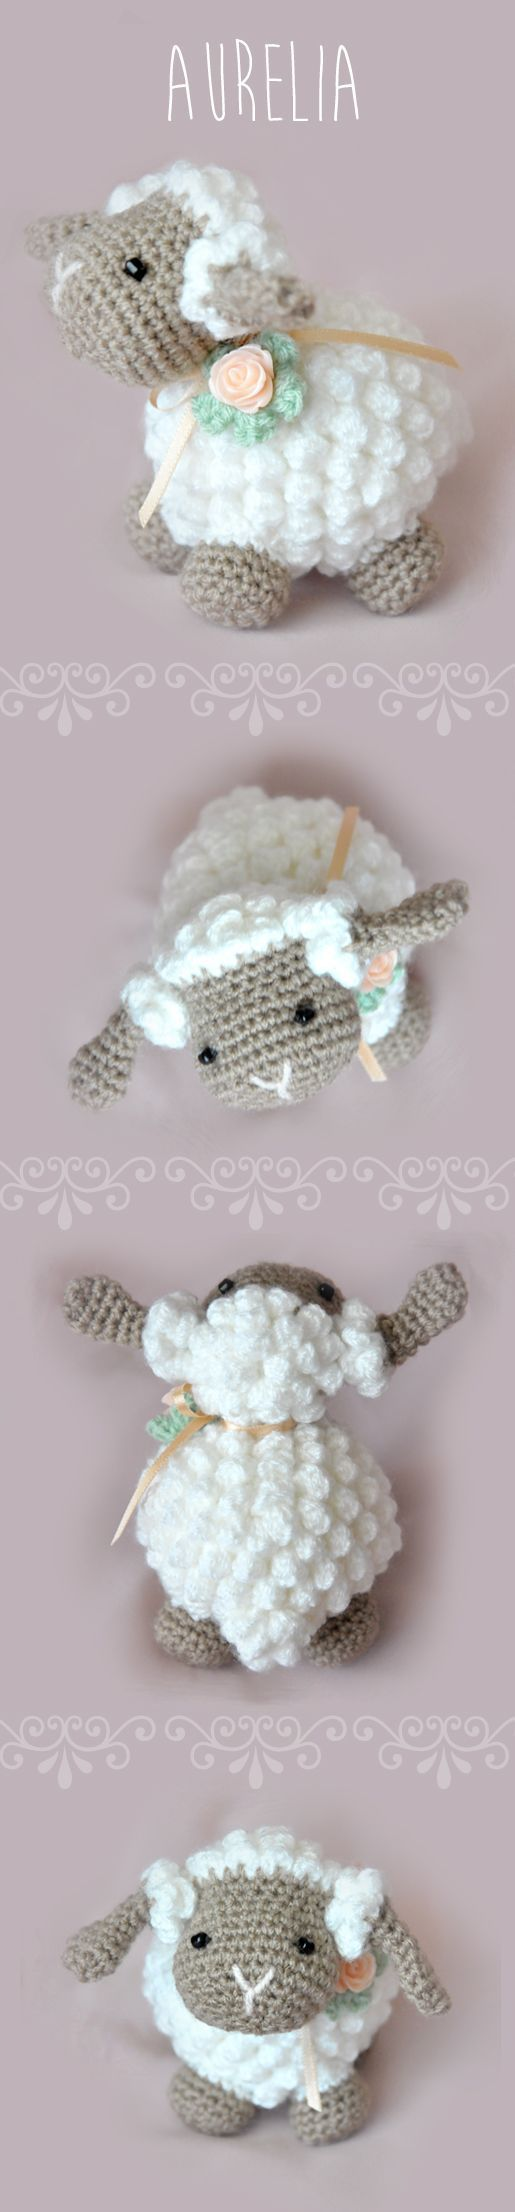 45 best crochet dolls images on Pinterest | Crochet toys, Amigurumi ...